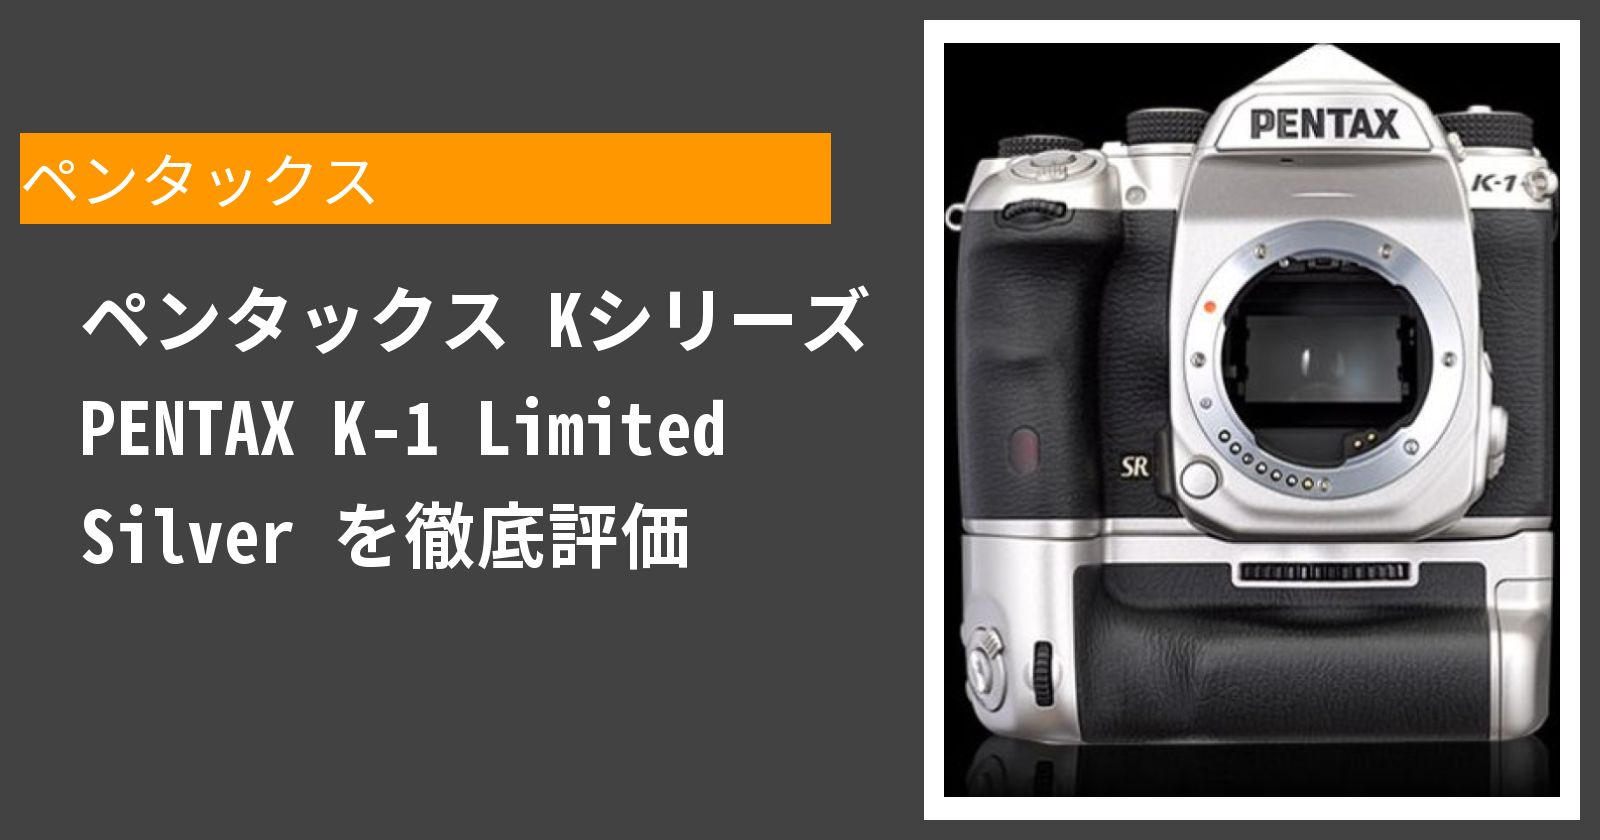 PENTAX K-1 Limited Silverを徹底評価